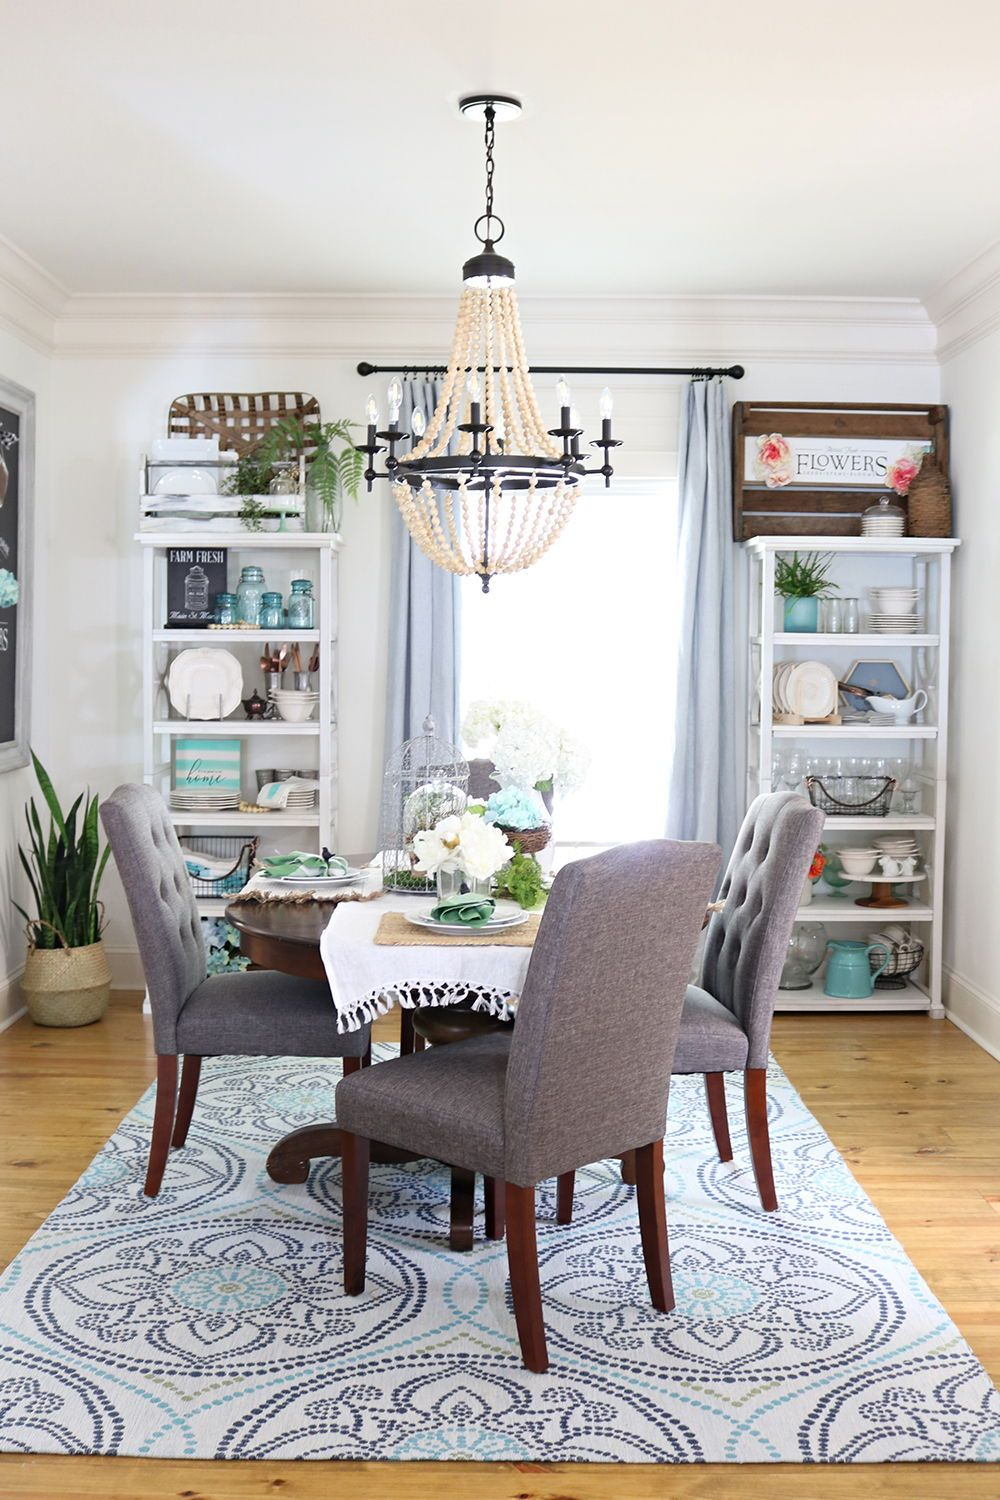 8011e540c1b1a78d65de9678662ad51e - Better Homes And Gardens Parsons Tufted Dining Chair Beige